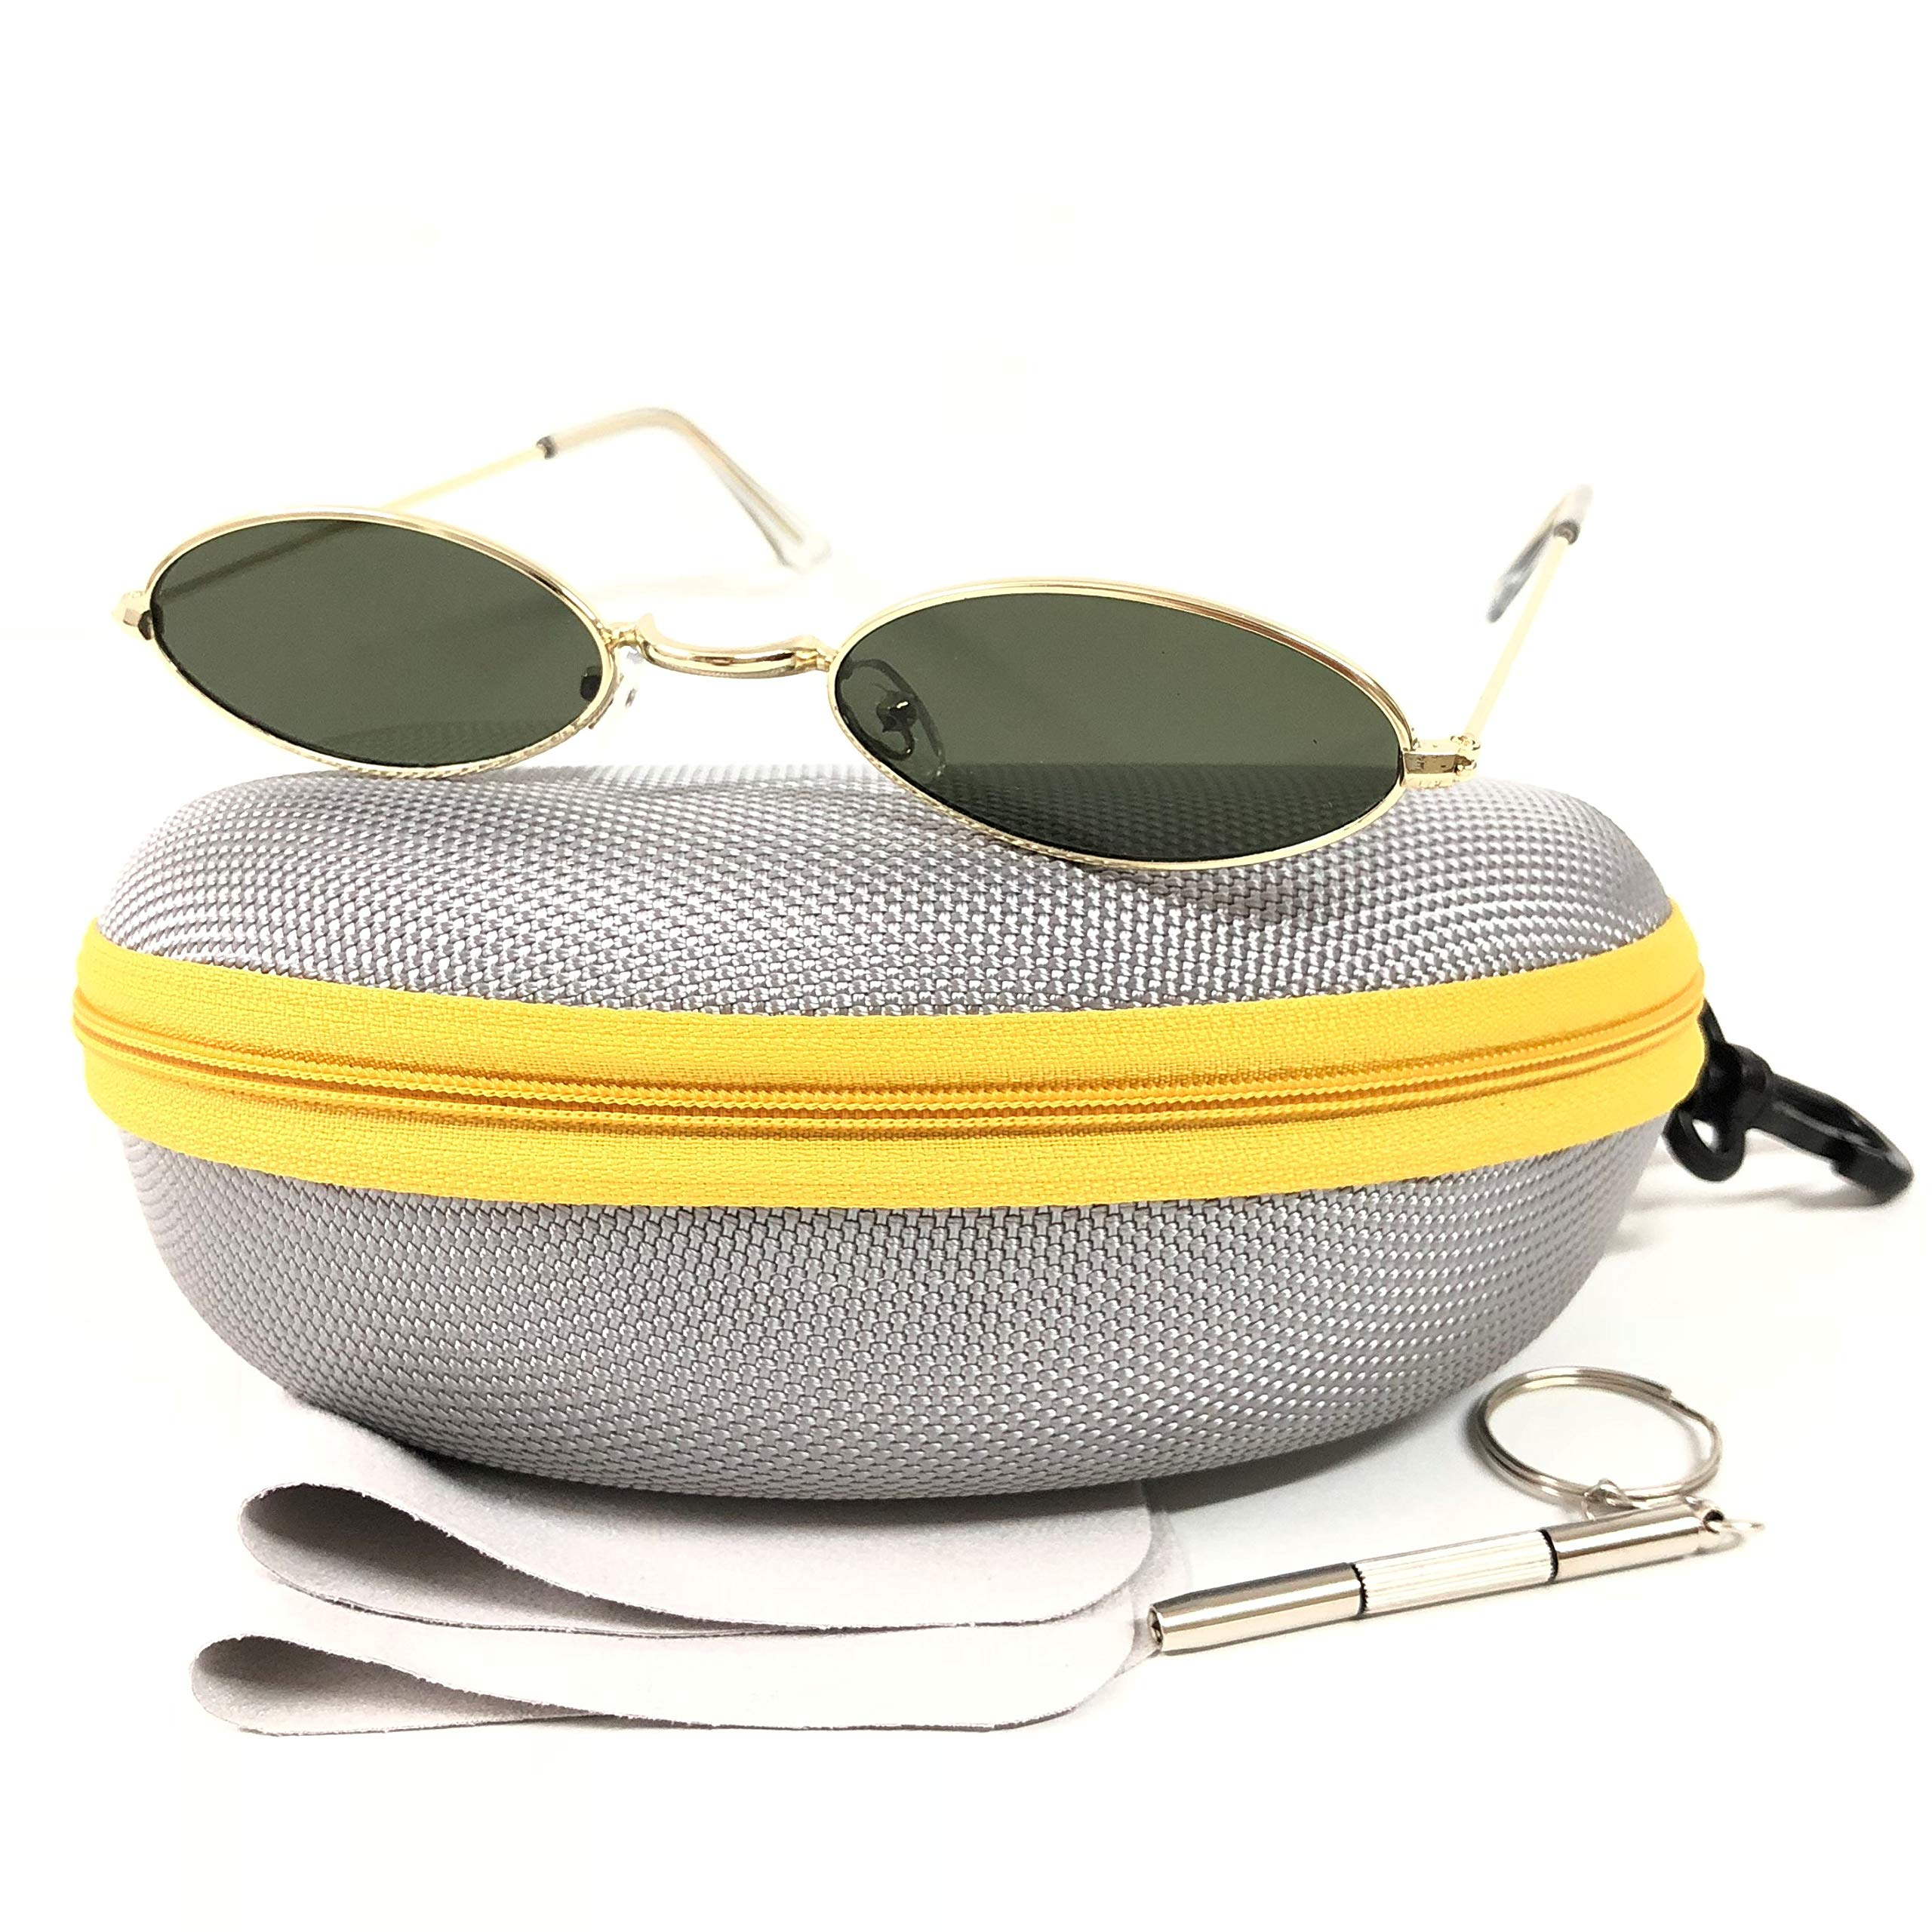 c7173db373 Vintage Small Oval Design Sunglasses for Women Men 100% UV Protection with  Case